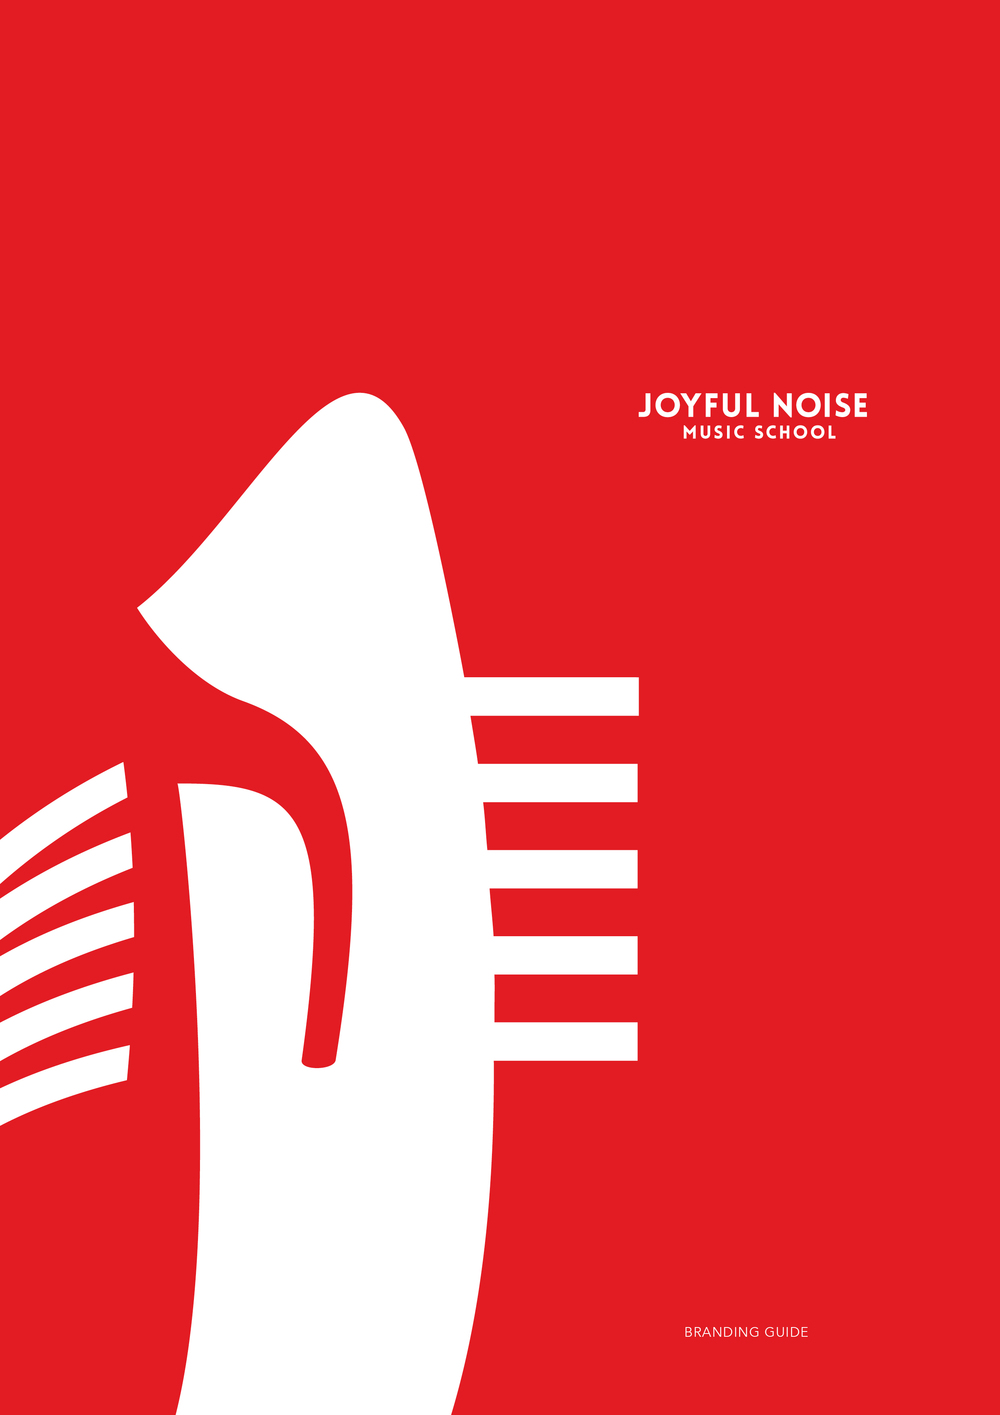 Joyful Noise Brand Book.jpg